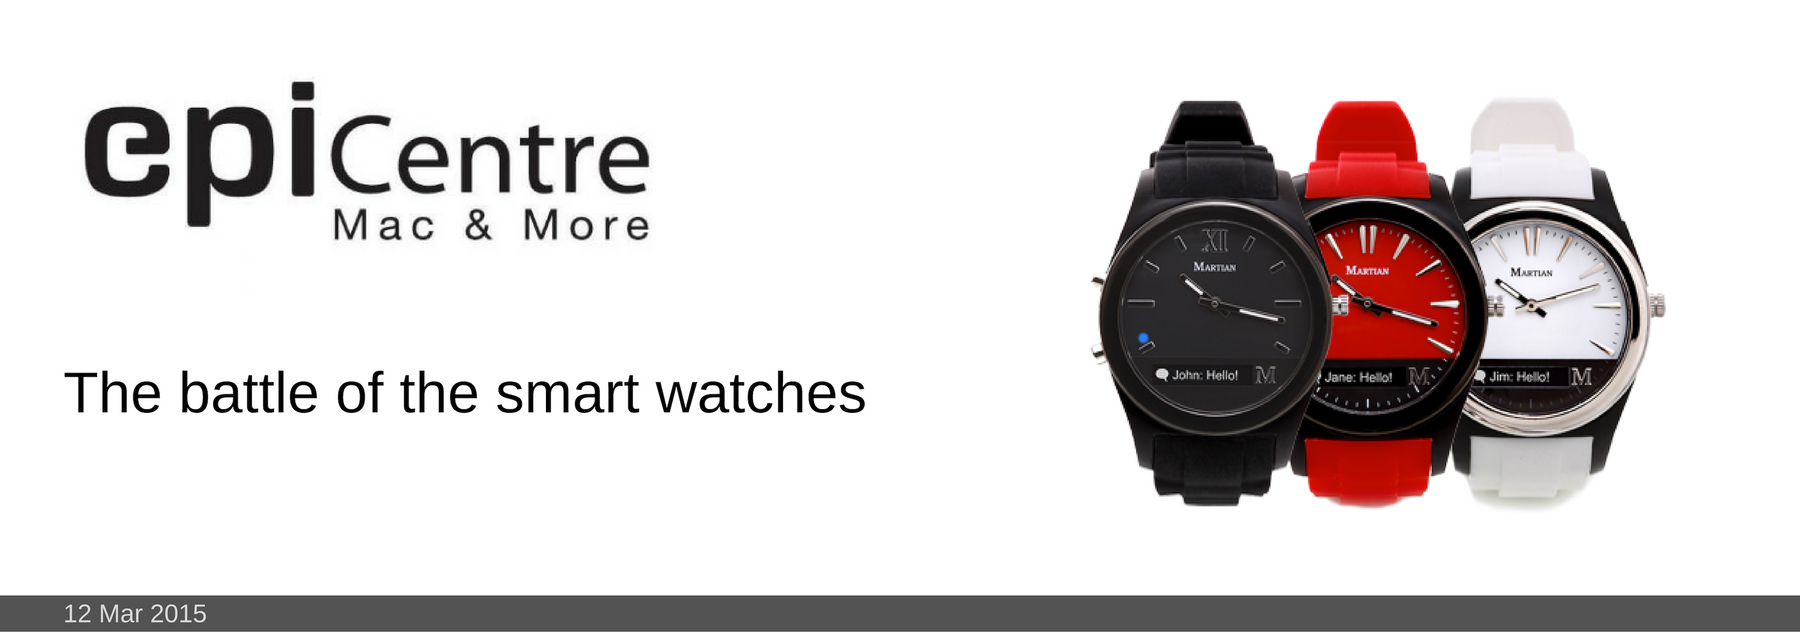 12 MAR 2015: The battle of the smart watches